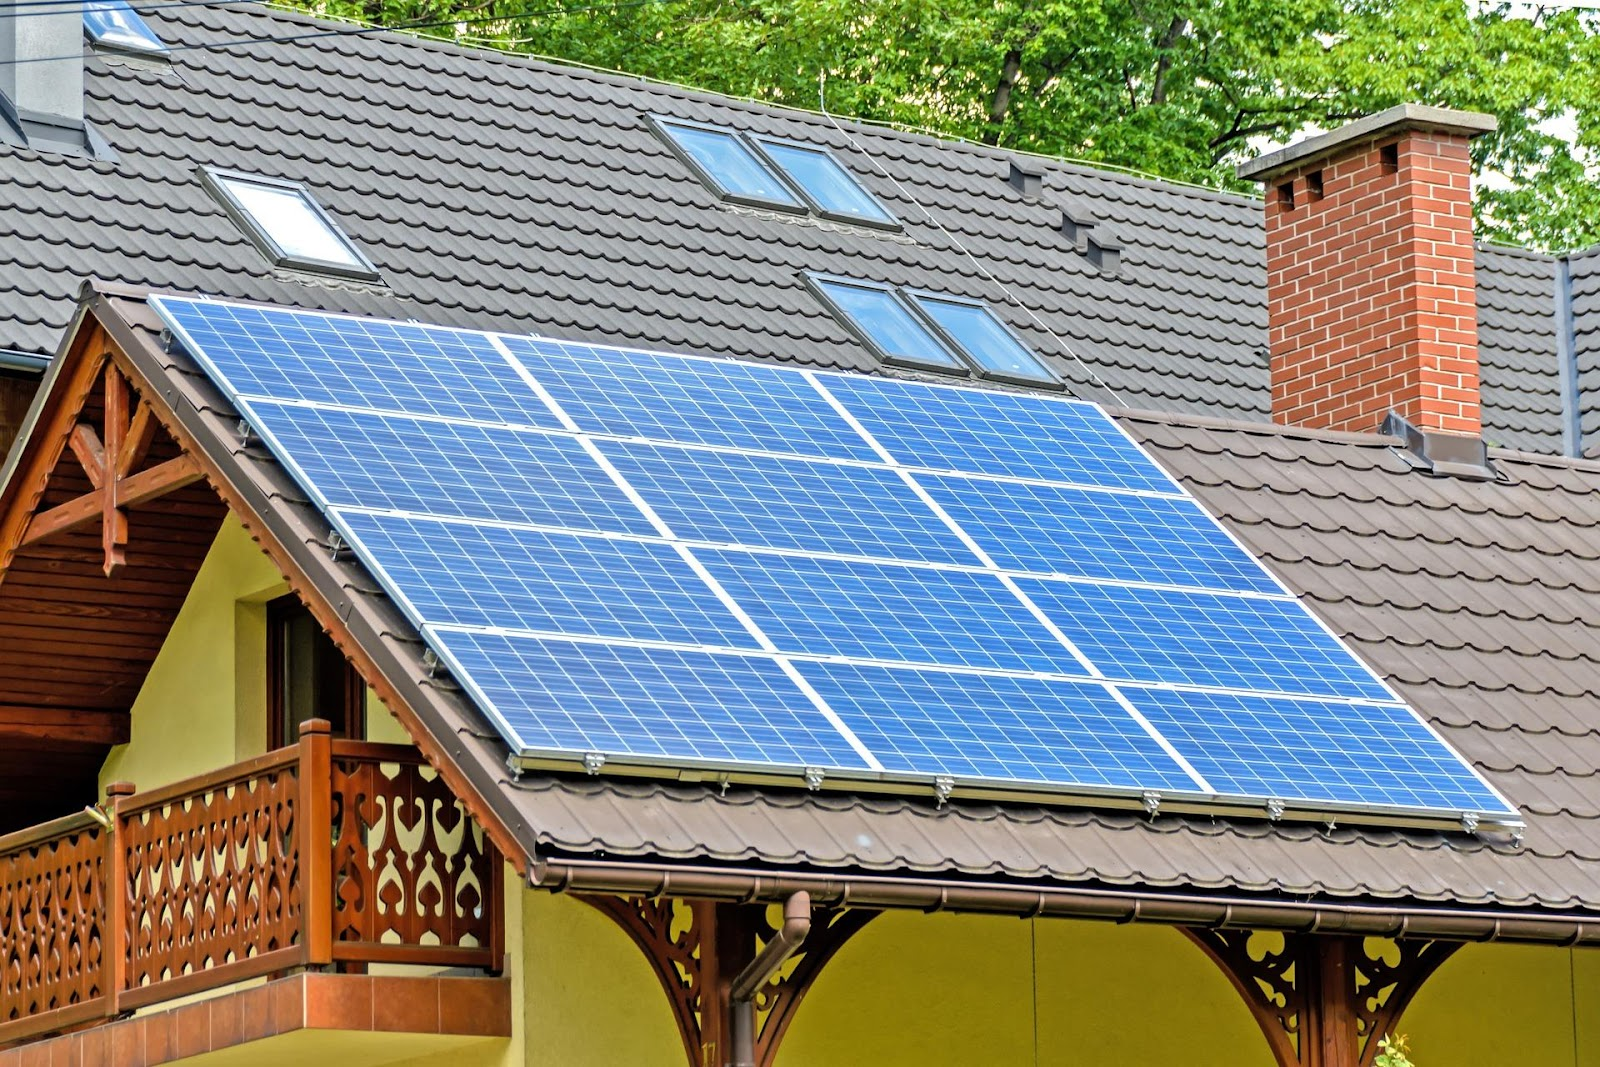 Solar panels on a roof